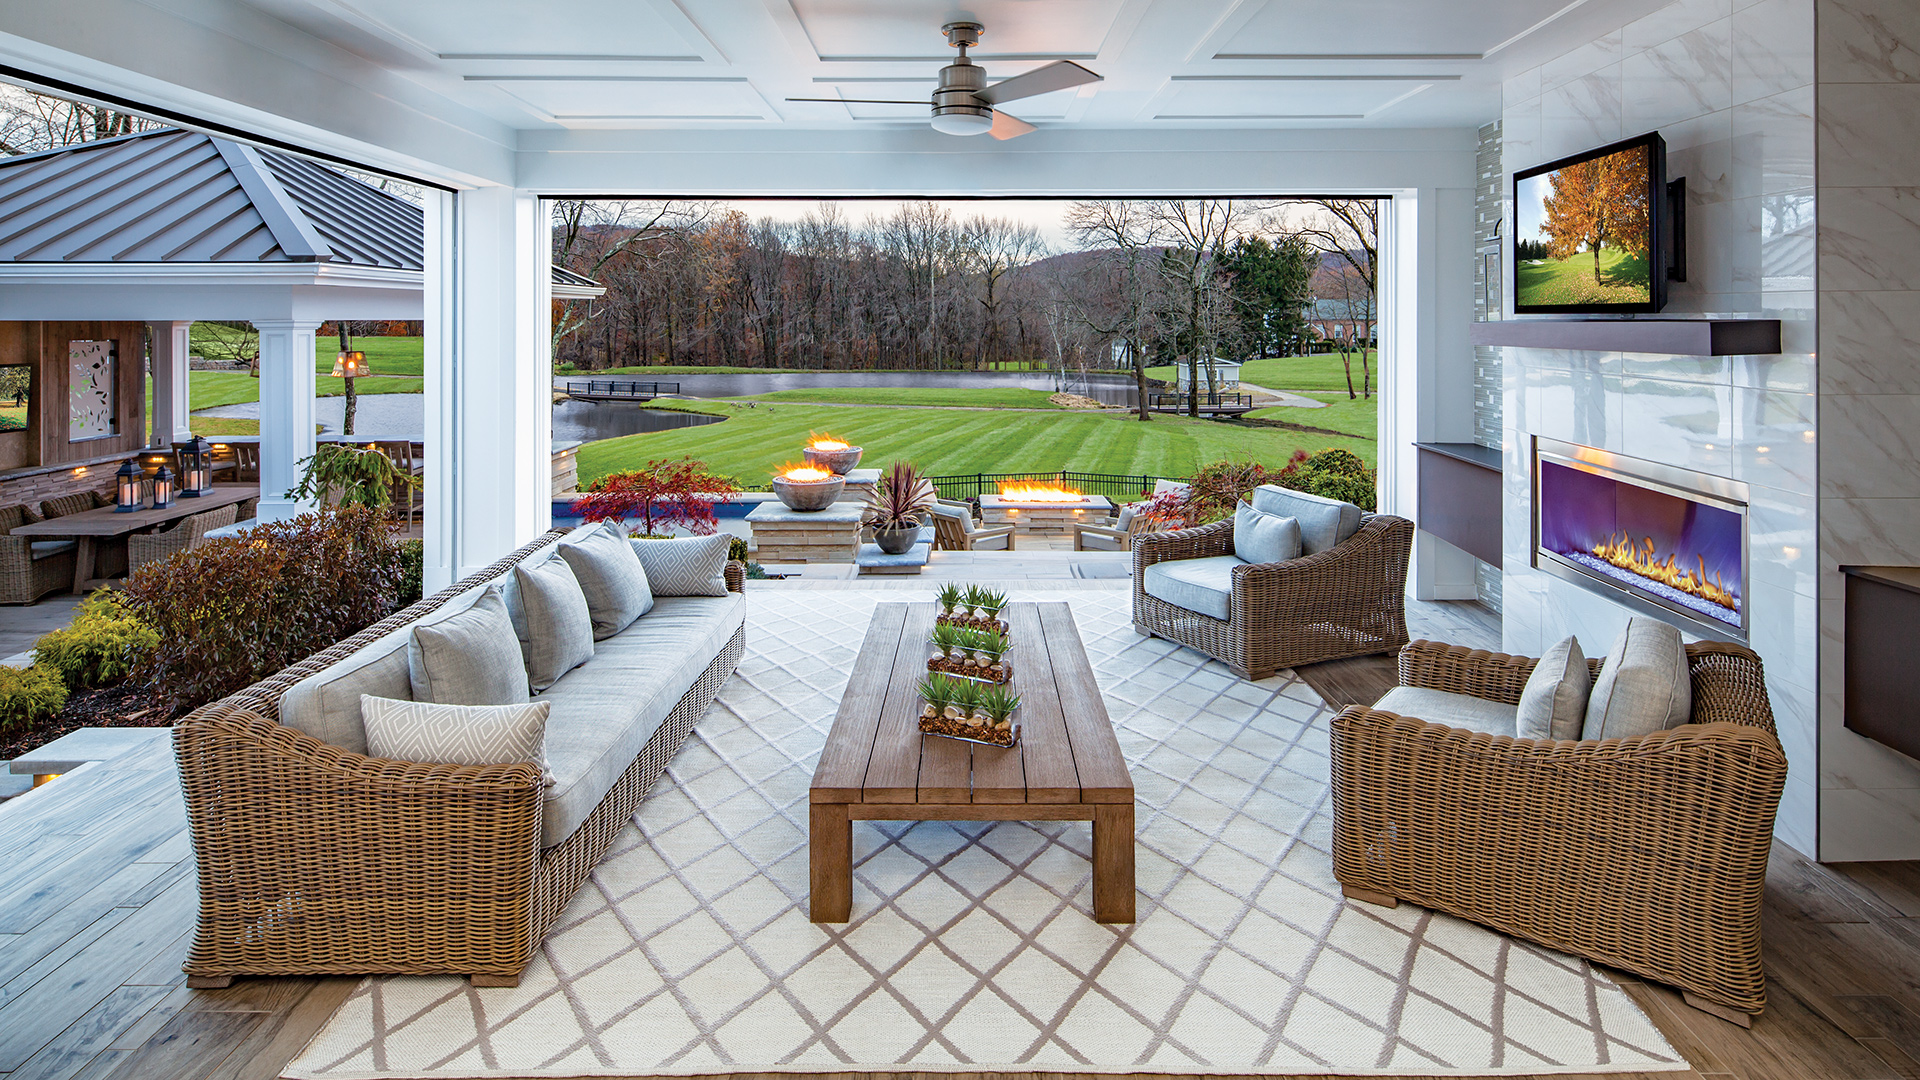 New Homes for Sale in Franklin Lakes, NJ   Reserve at ... on Outdoor Living Sale id=82854